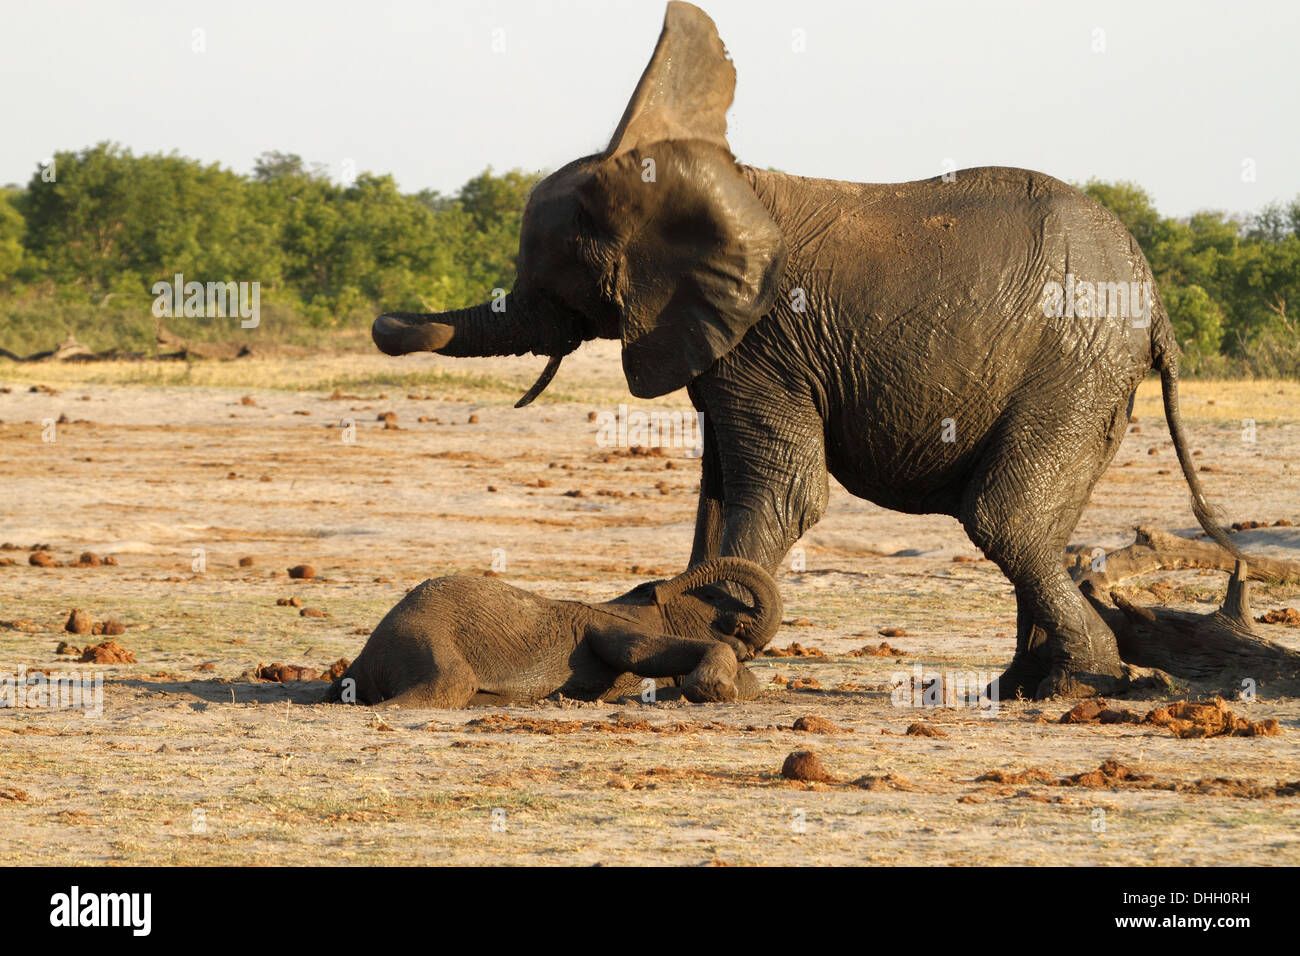 African elephants, mother shaking head, infant laying on fround - Stock Image